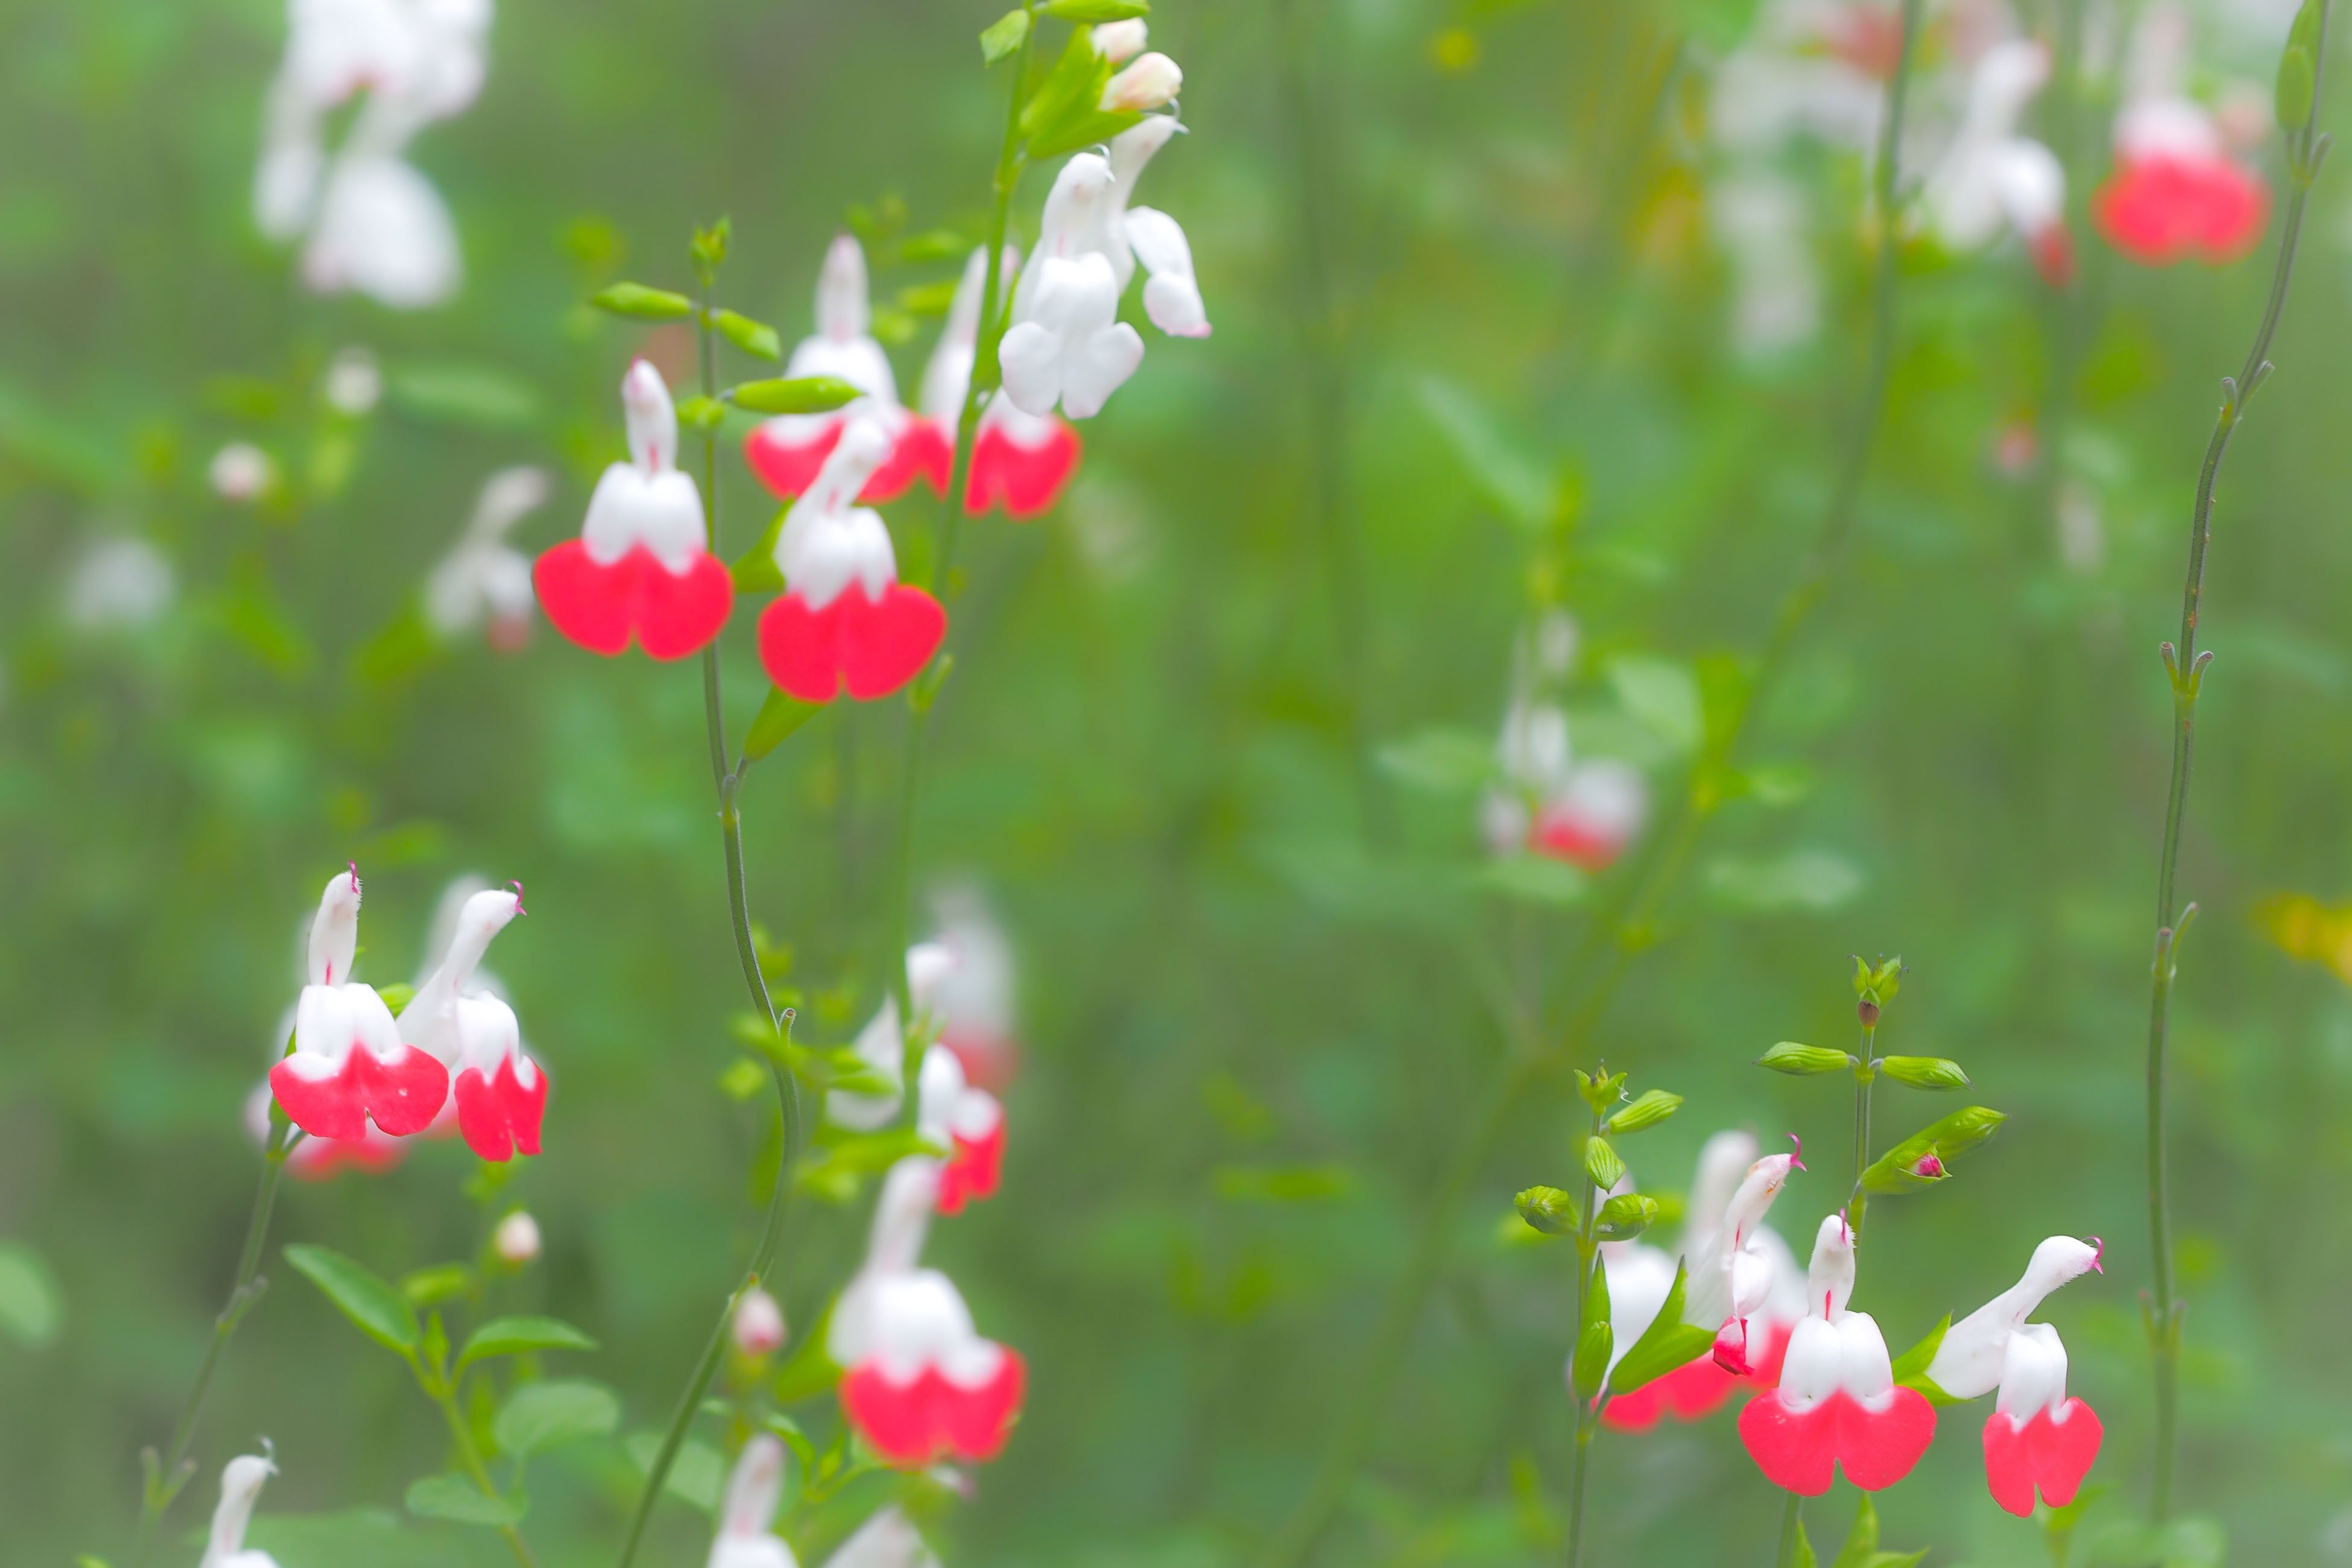 flower, freshness, fragility, petal, growth, beauty in nature, blooming, flower head, focus on foreground, pink color, plant, nature, red, stem, in bloom, close-up, blossom, bud, day, outdoors